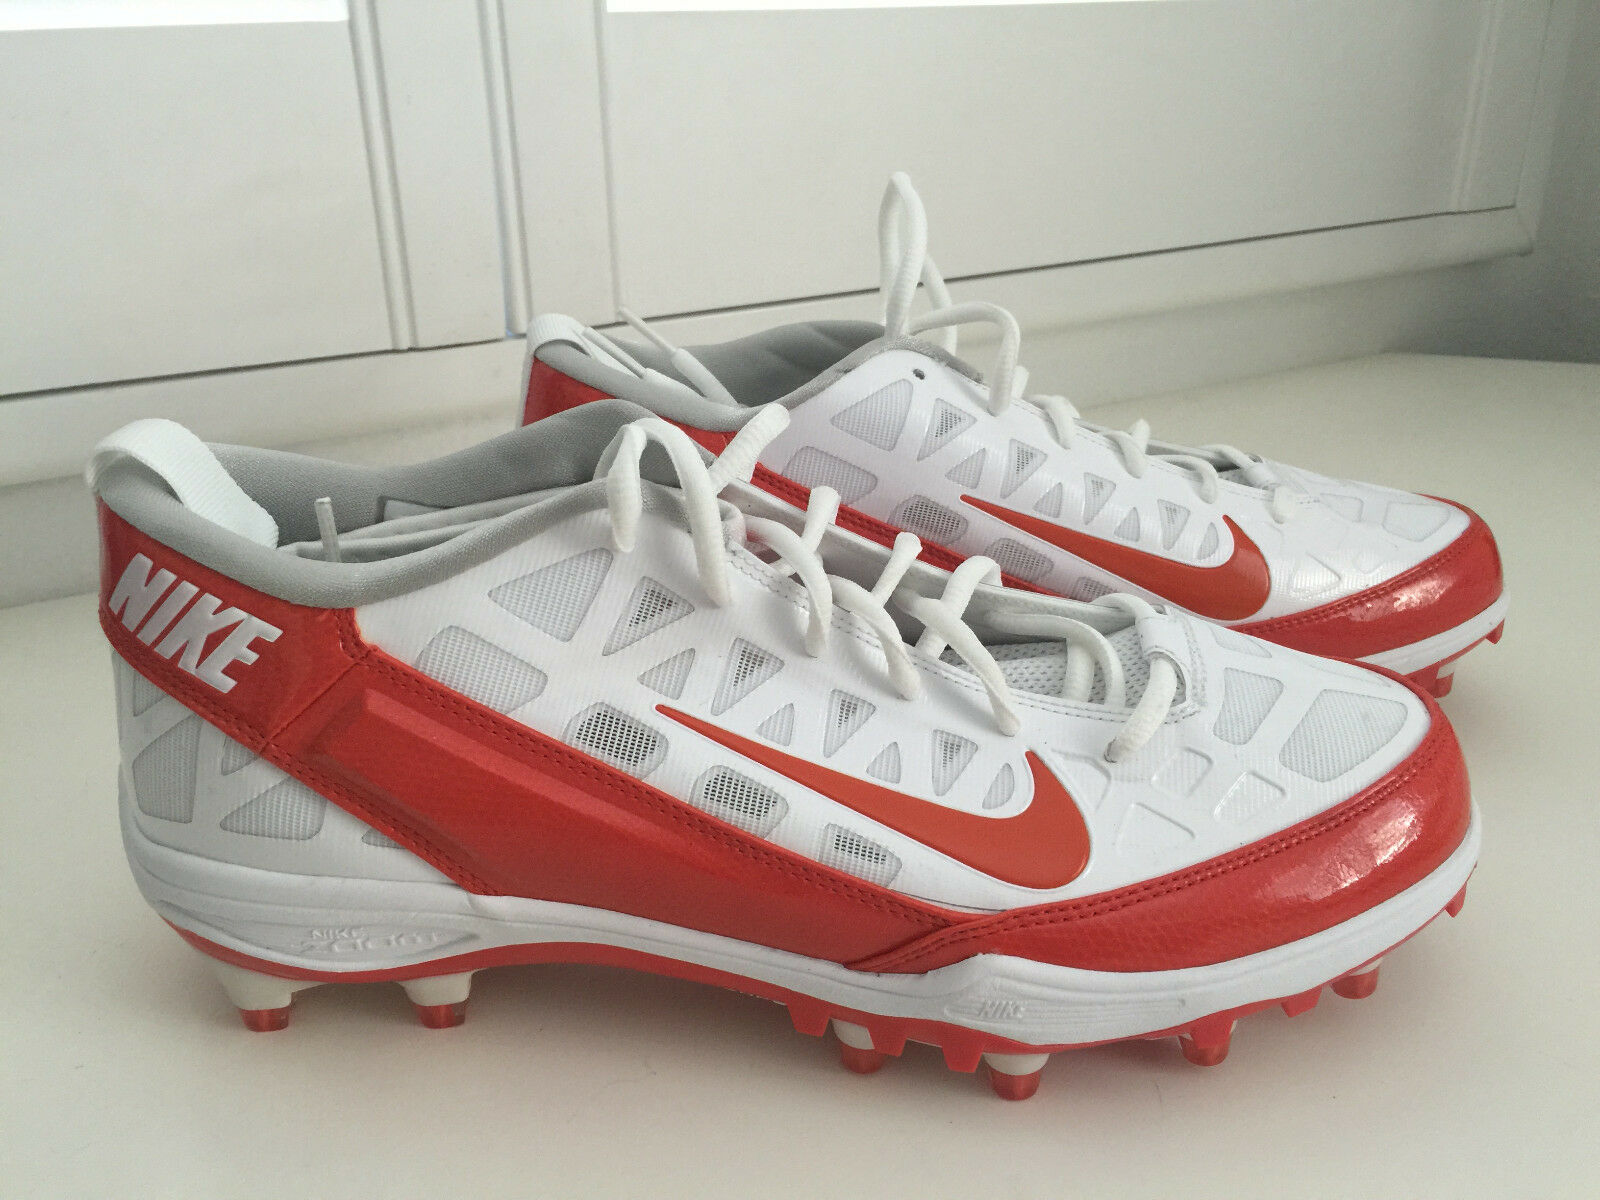 Nike football taglia scarpe taglia football 10. 347fff